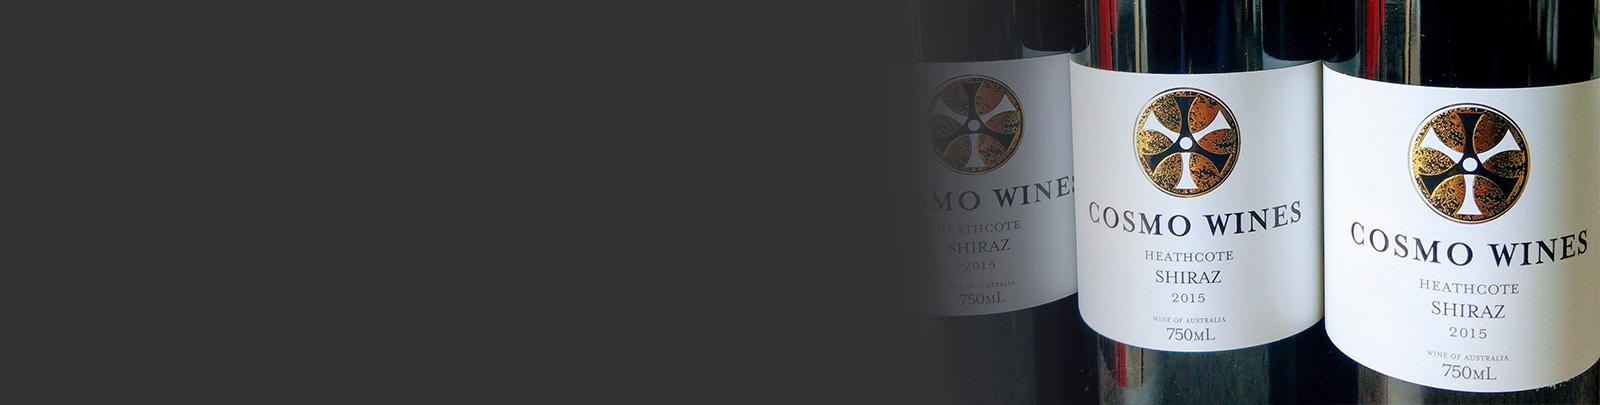 Introducing Cosmo Wines